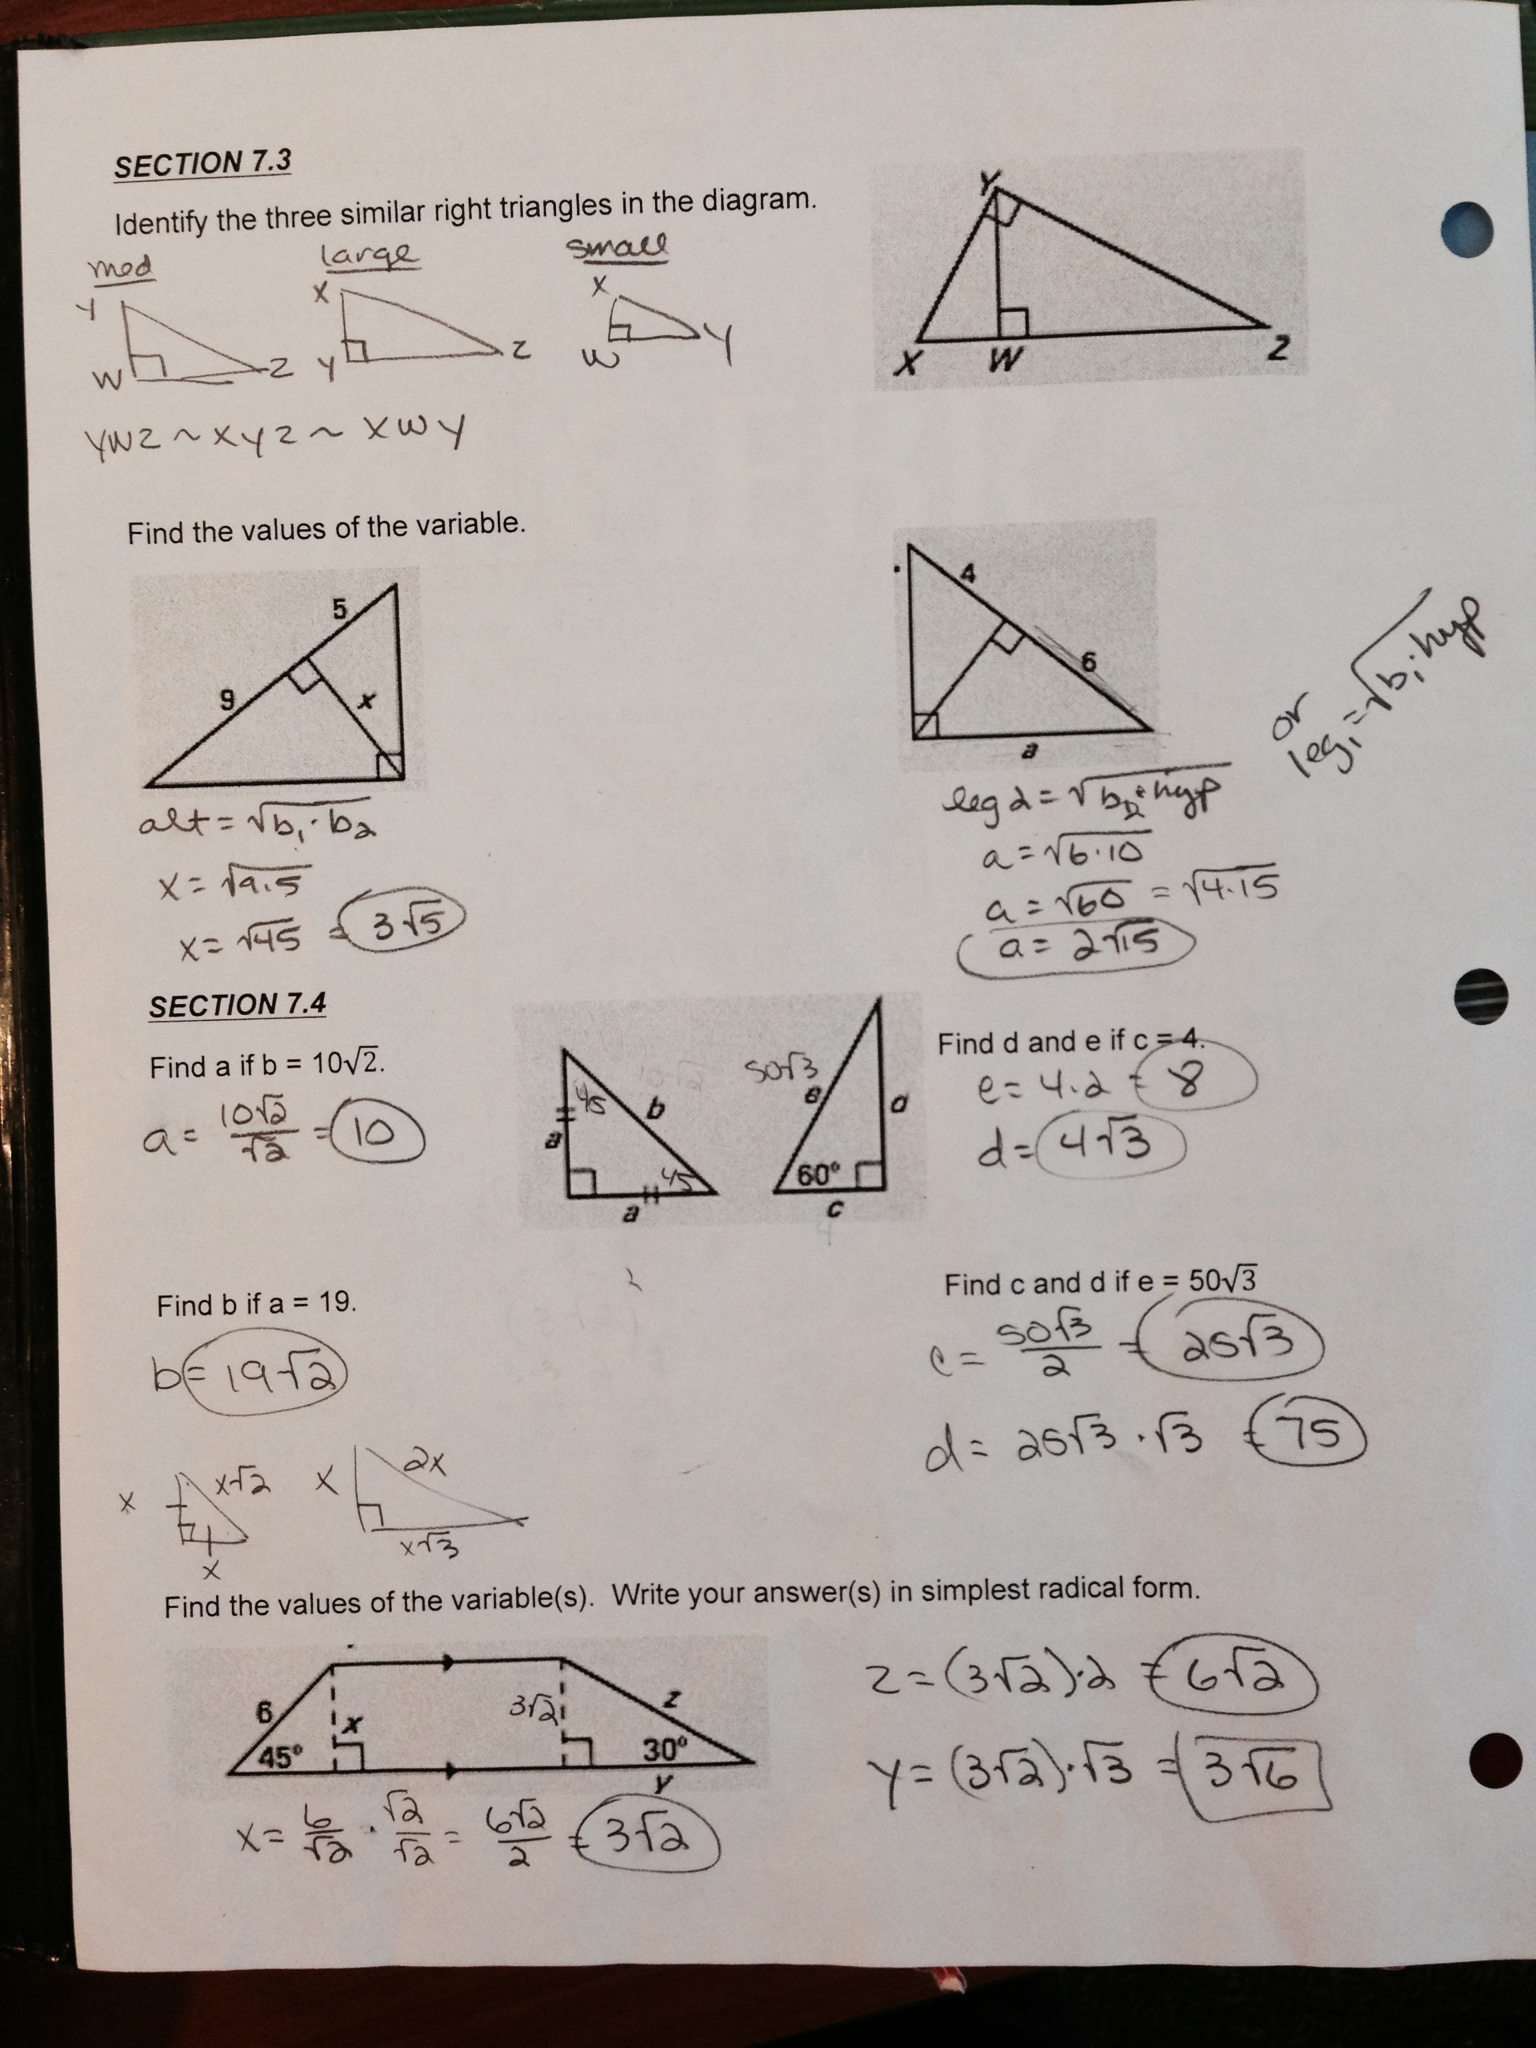 Worksheets Geometry Worksheets Answers geometry worksheet answers sharebrowse of sharebrowse